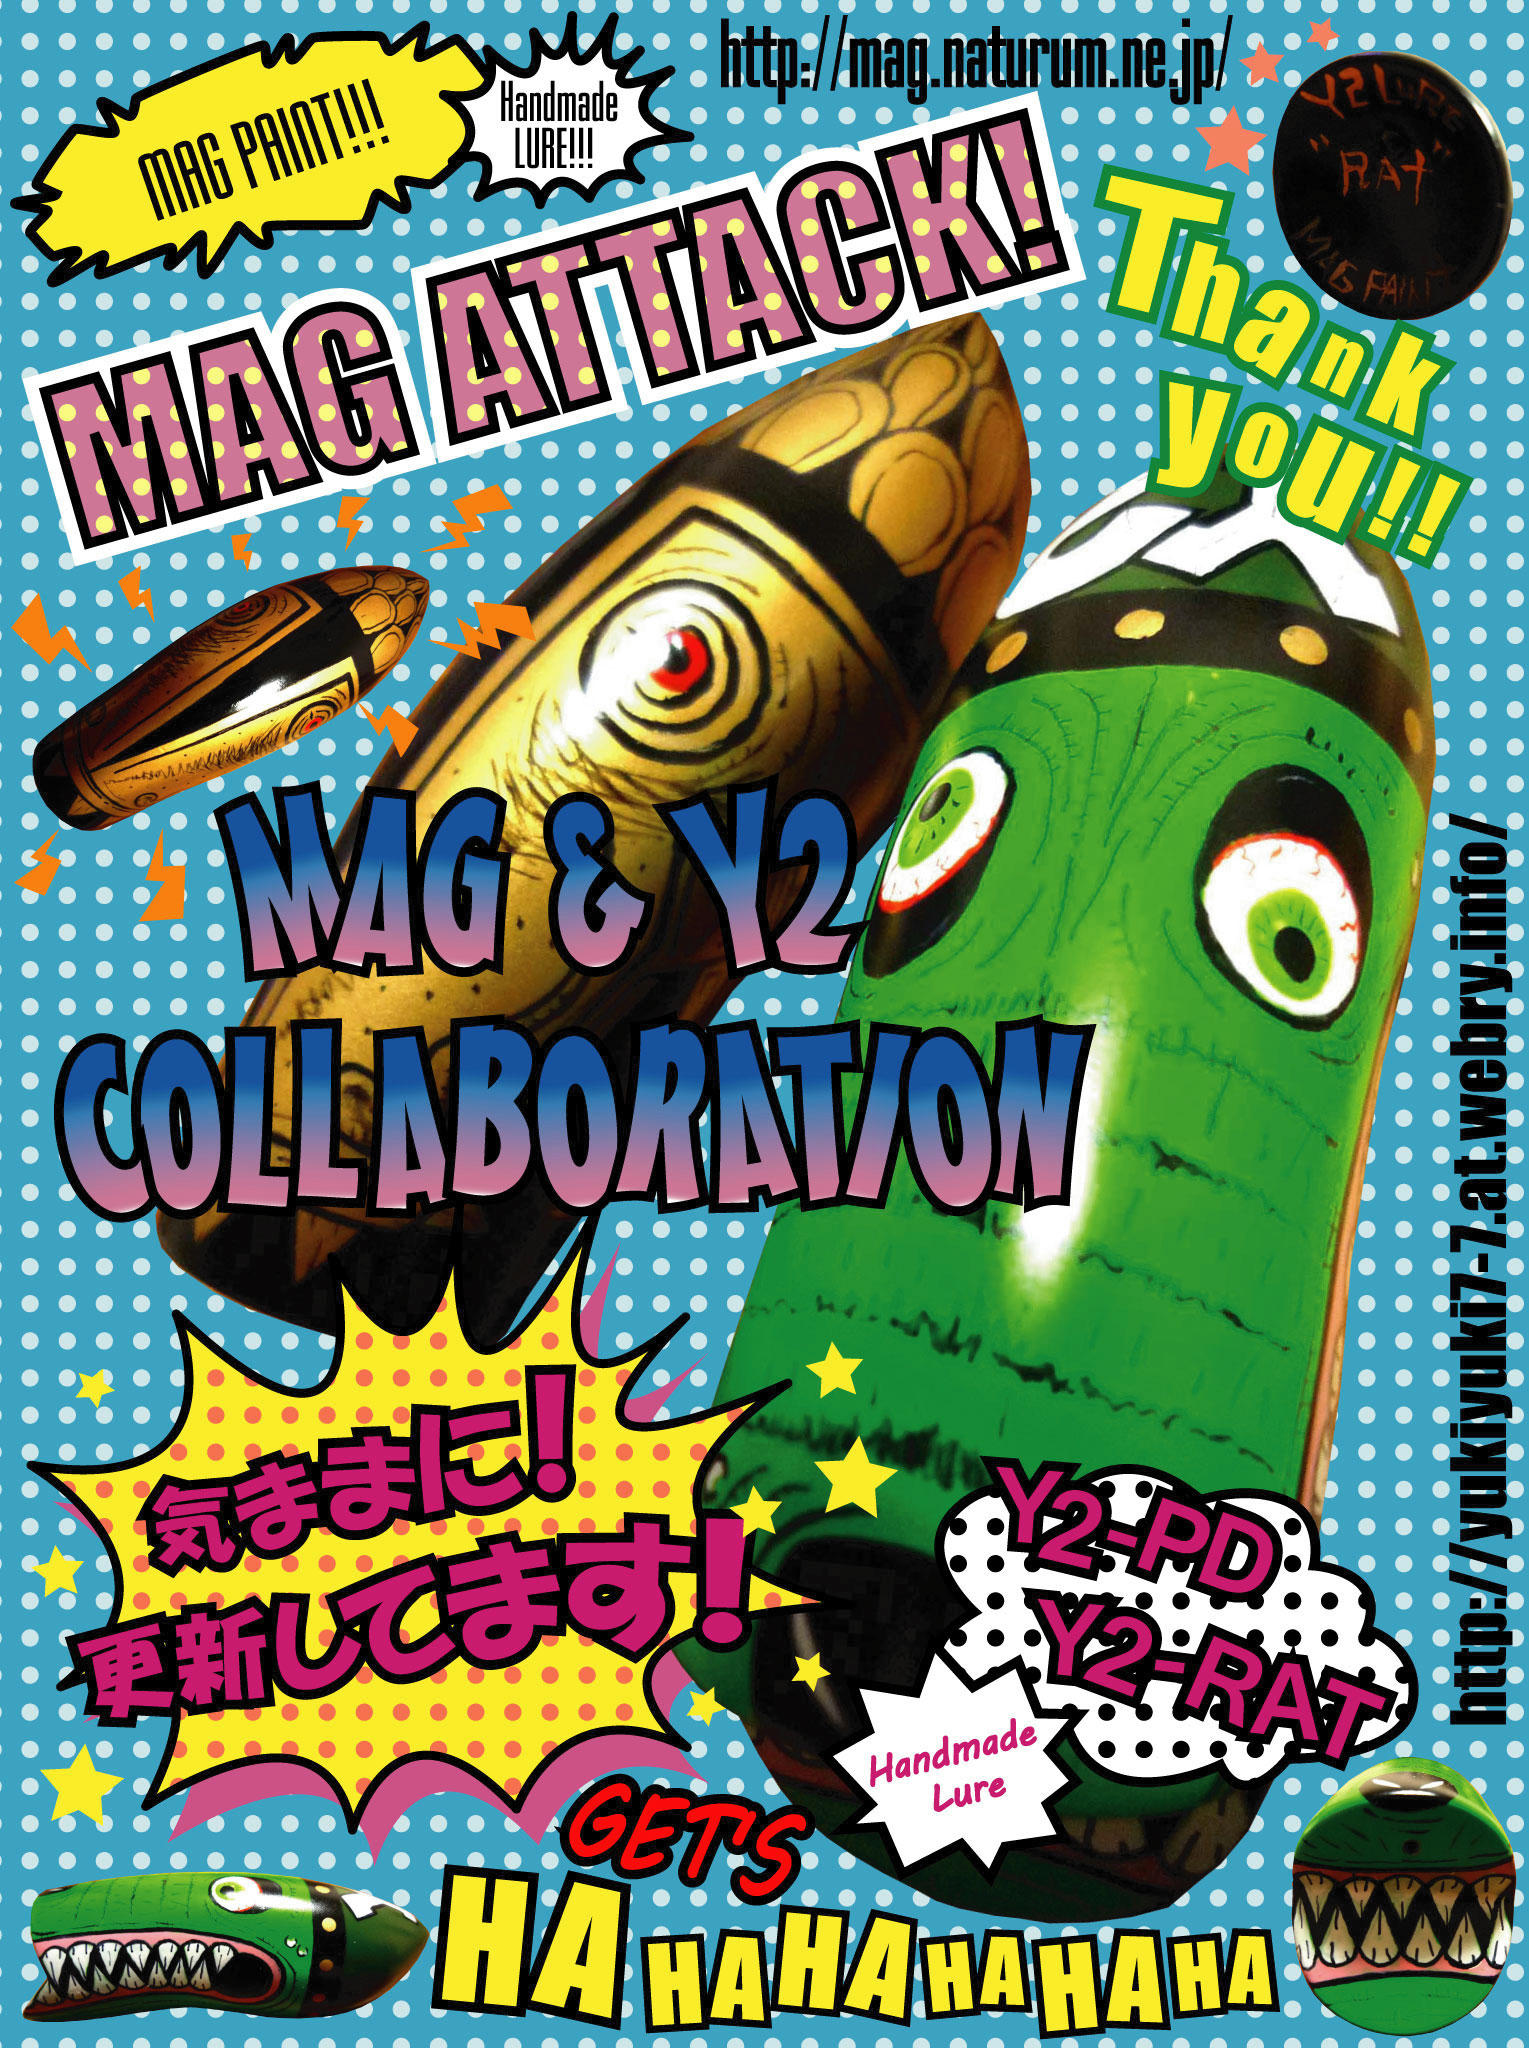 MAG & Y2 COLLABORATION!!!!!!!